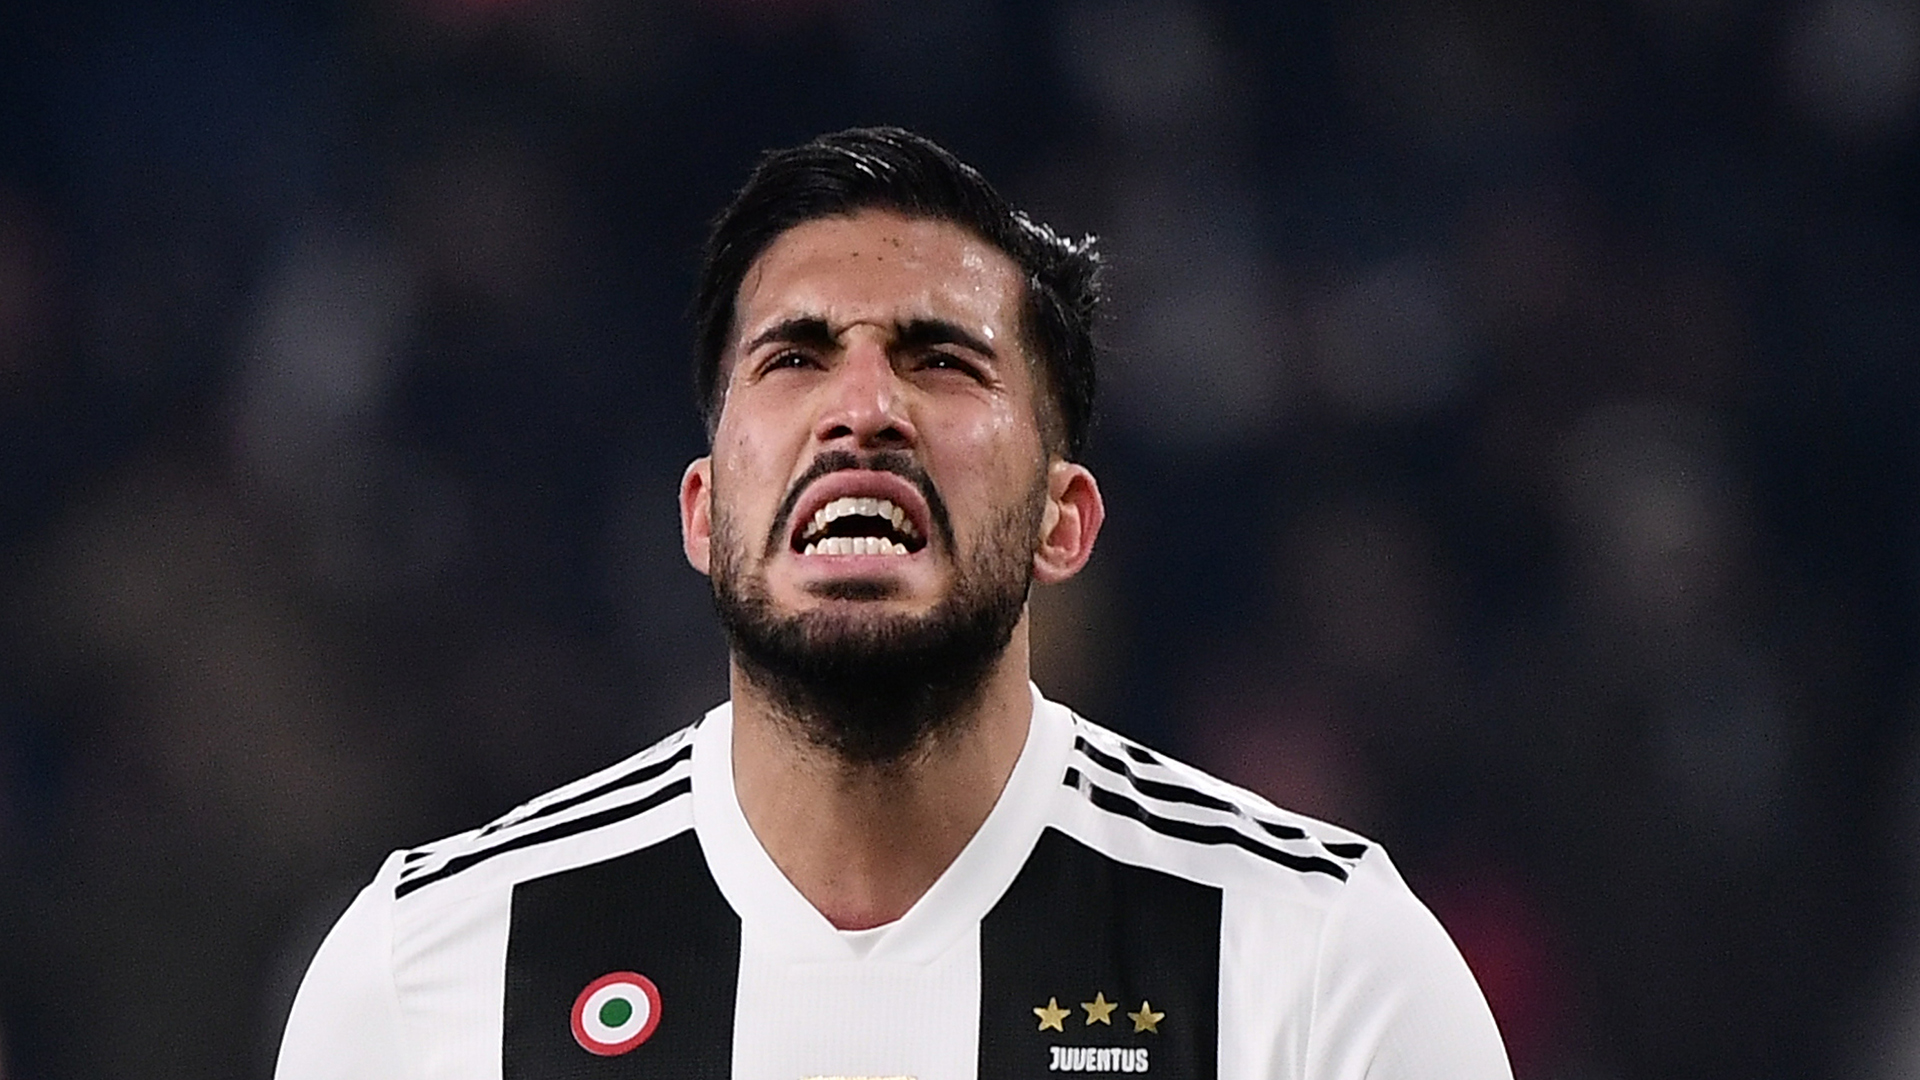 Not even a Juventus squad player! Emre Can's disastrous decision to quit Liverpool